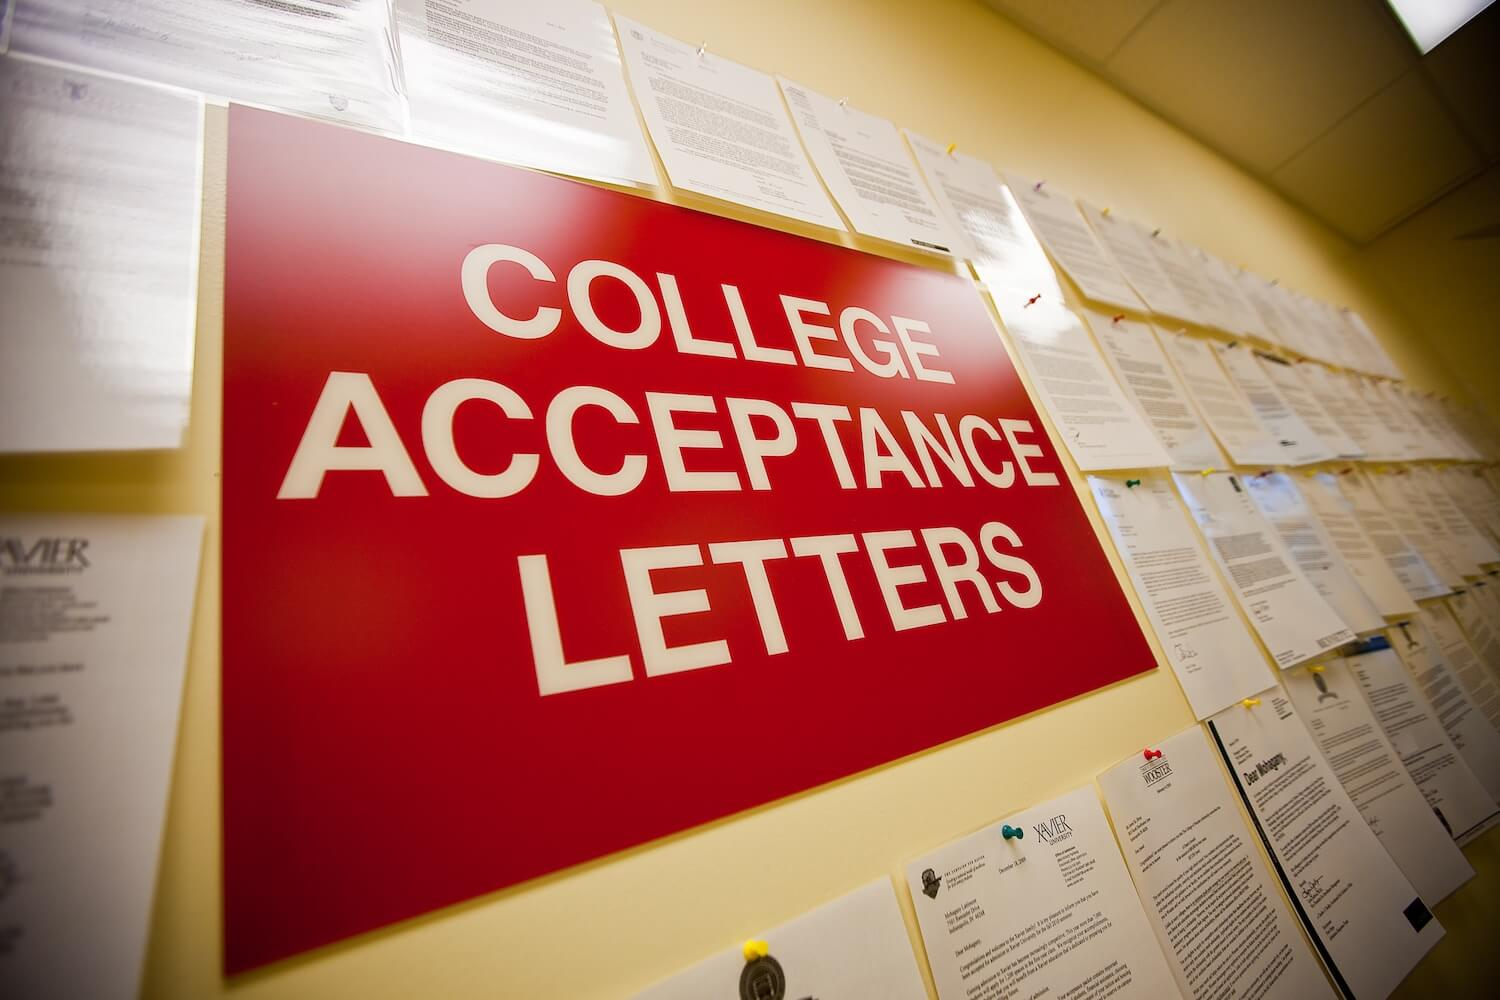 College Acceptance - Score At The Top